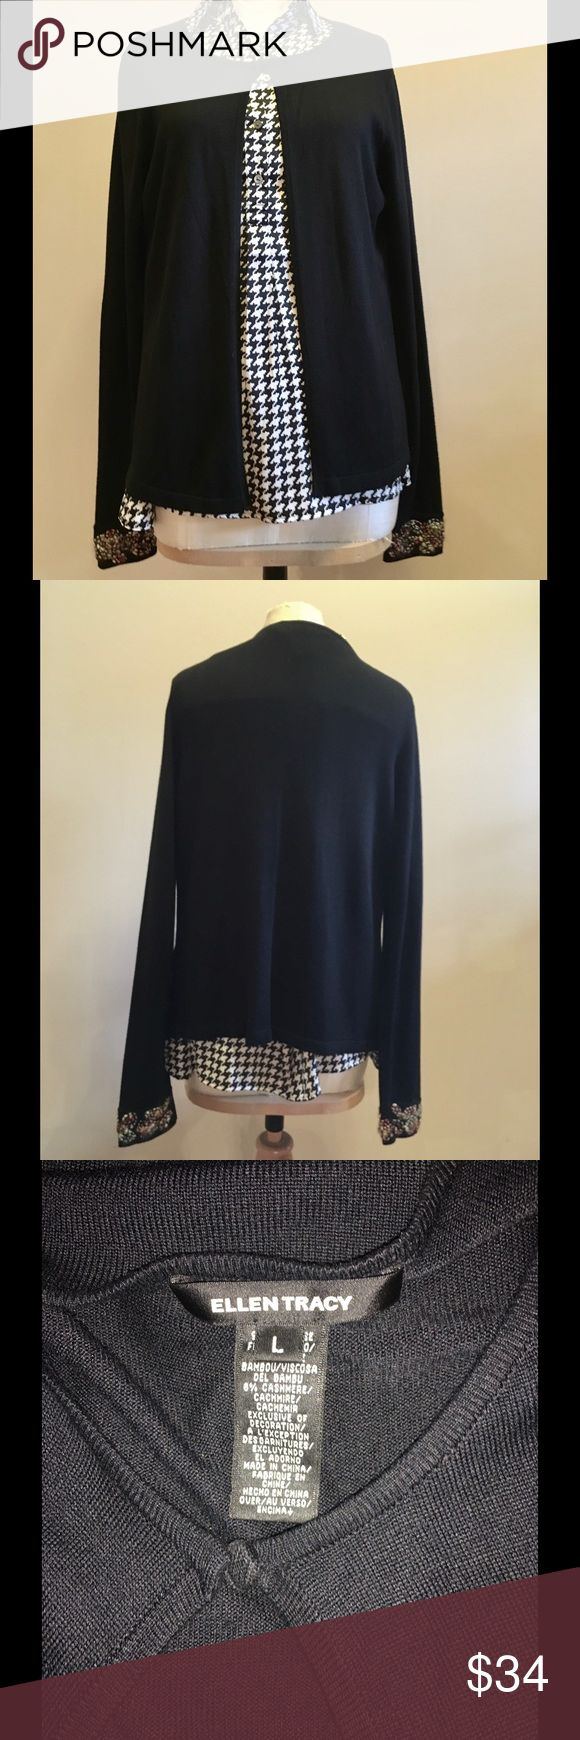 Ellen Tracy Black Embroidered Sleeve Cardigan Ellen Tracy Black Embroidered Sleeve Cardigan size large. Made with 92% viscose and 8% cashmere. It has a simple top button closure at the front top and the sleeve design is simply amazing as you can see in the last picture. It is in like new condition. Ellen Tracy Sweaters Cardigans